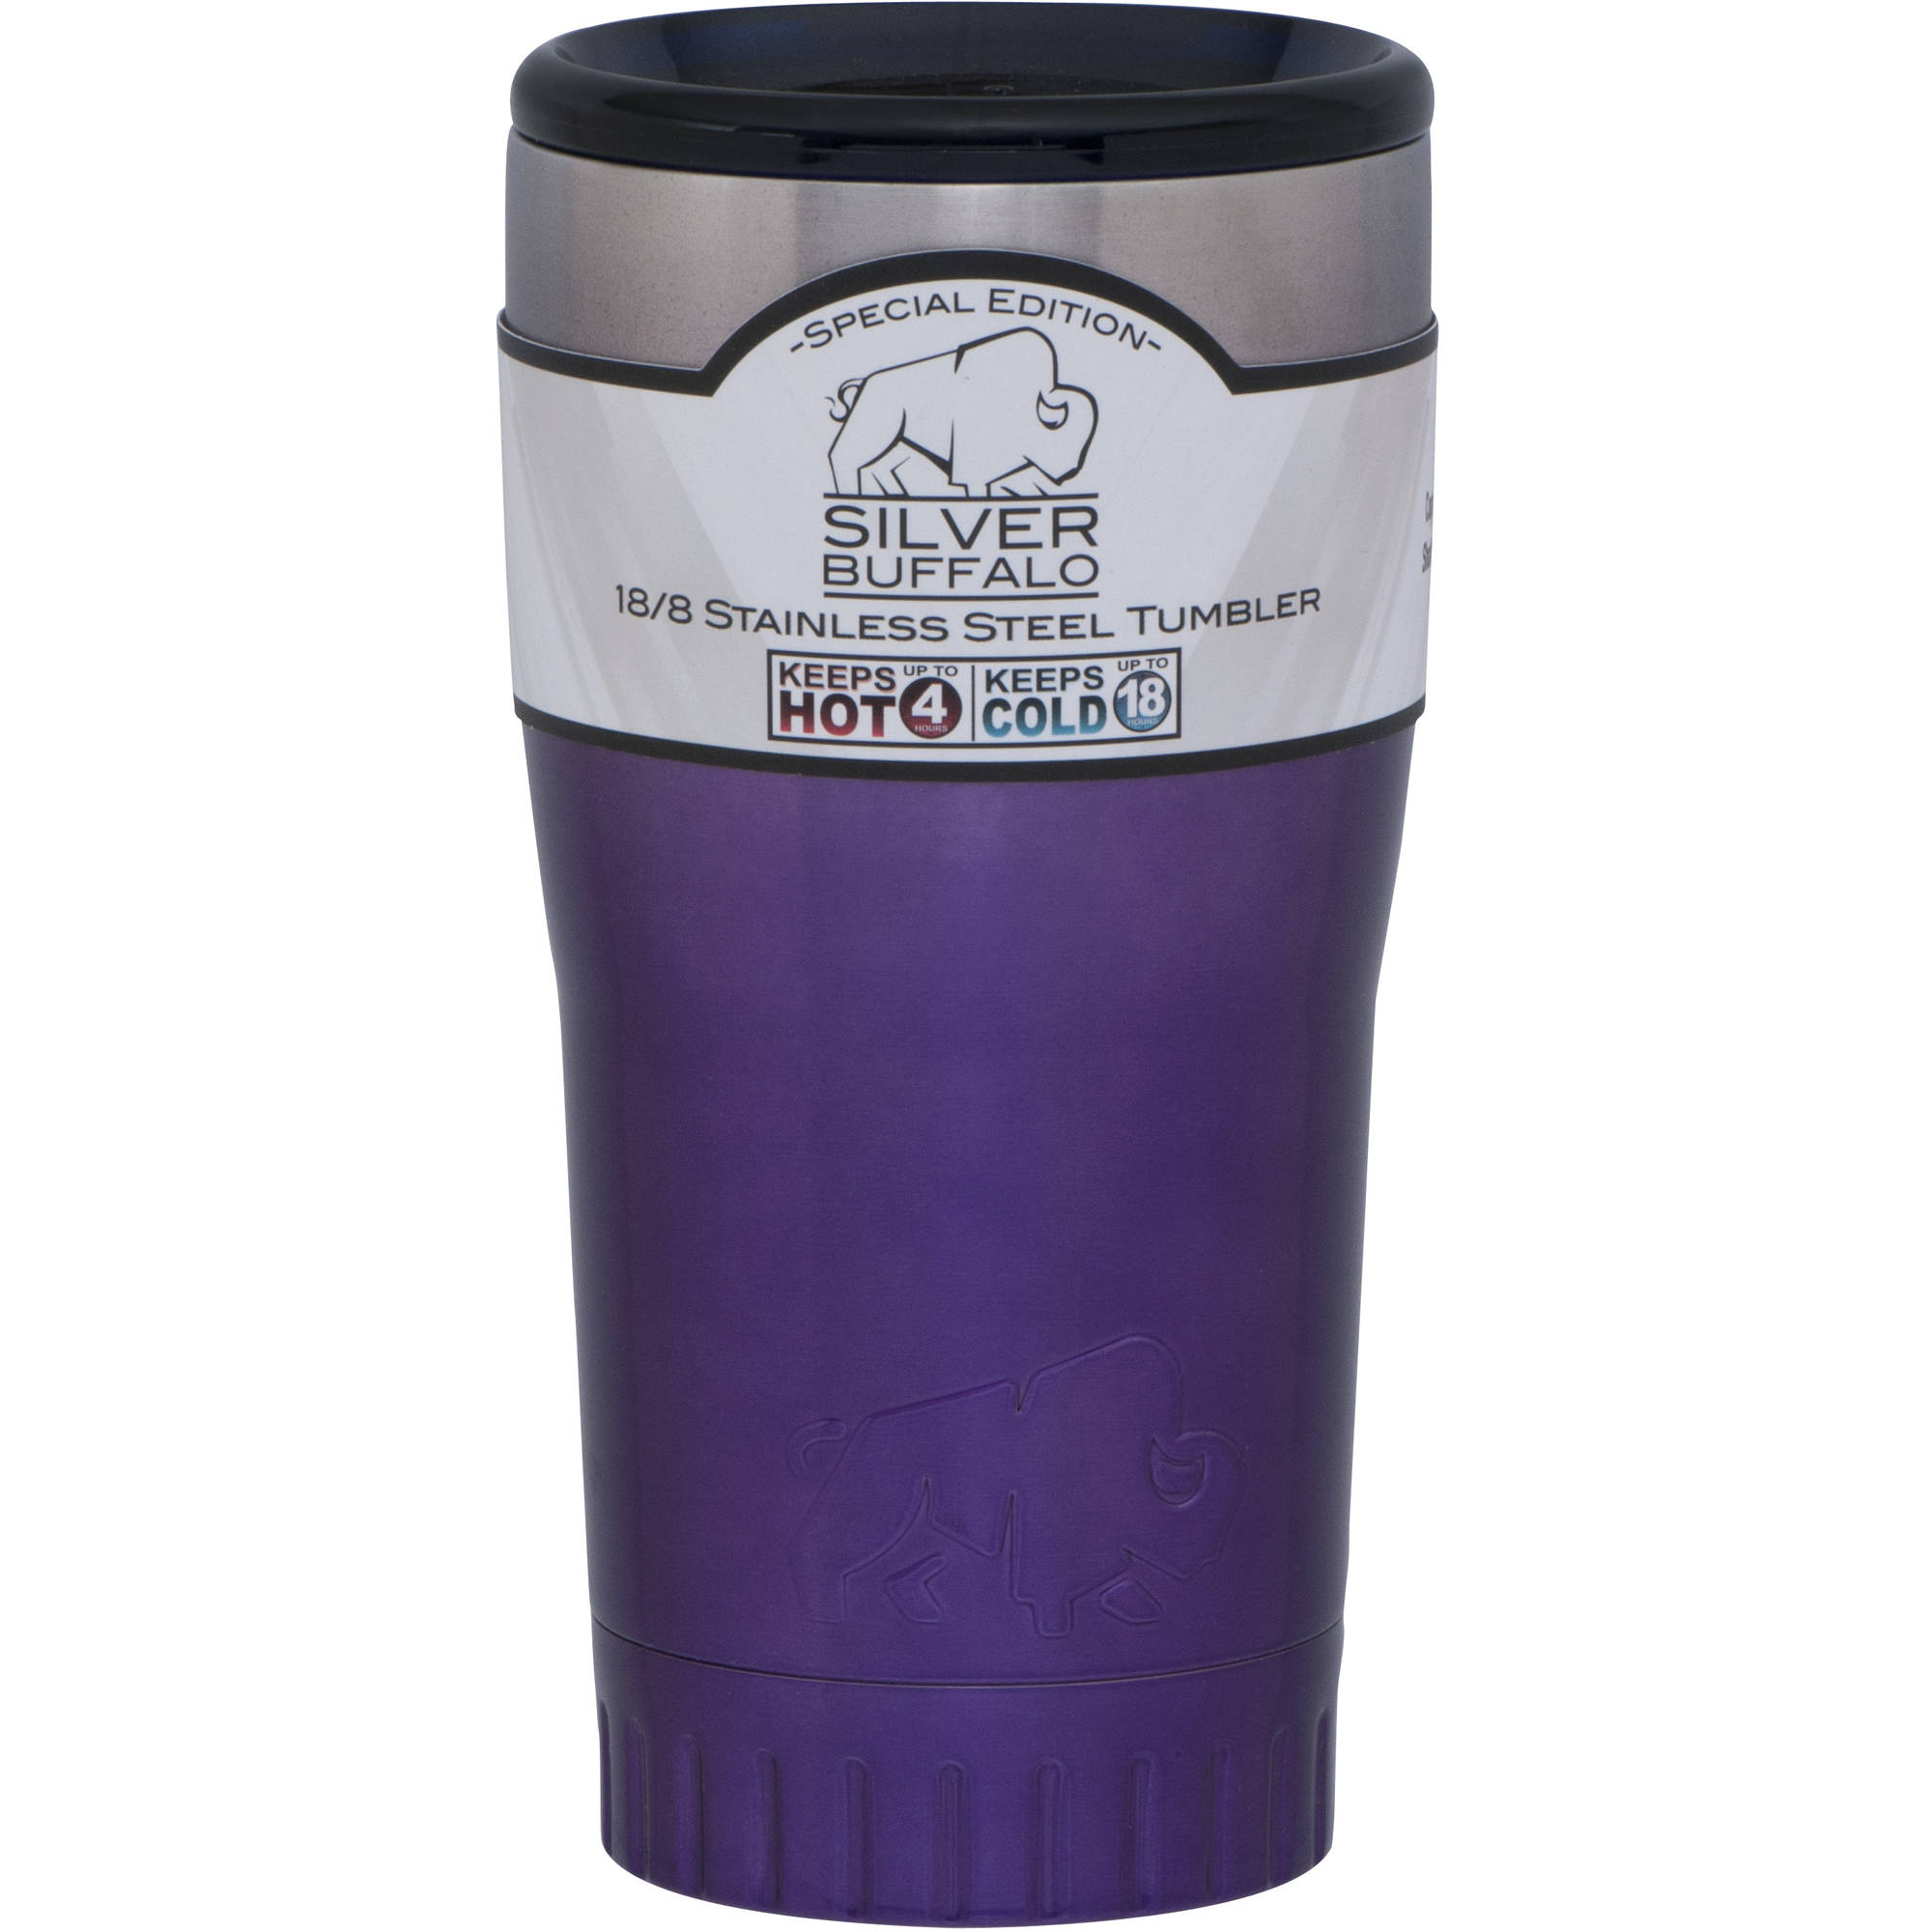 20 oz Stainless Steel Tumbler Cup by Silver Buffalo Ombre Purple by Generic